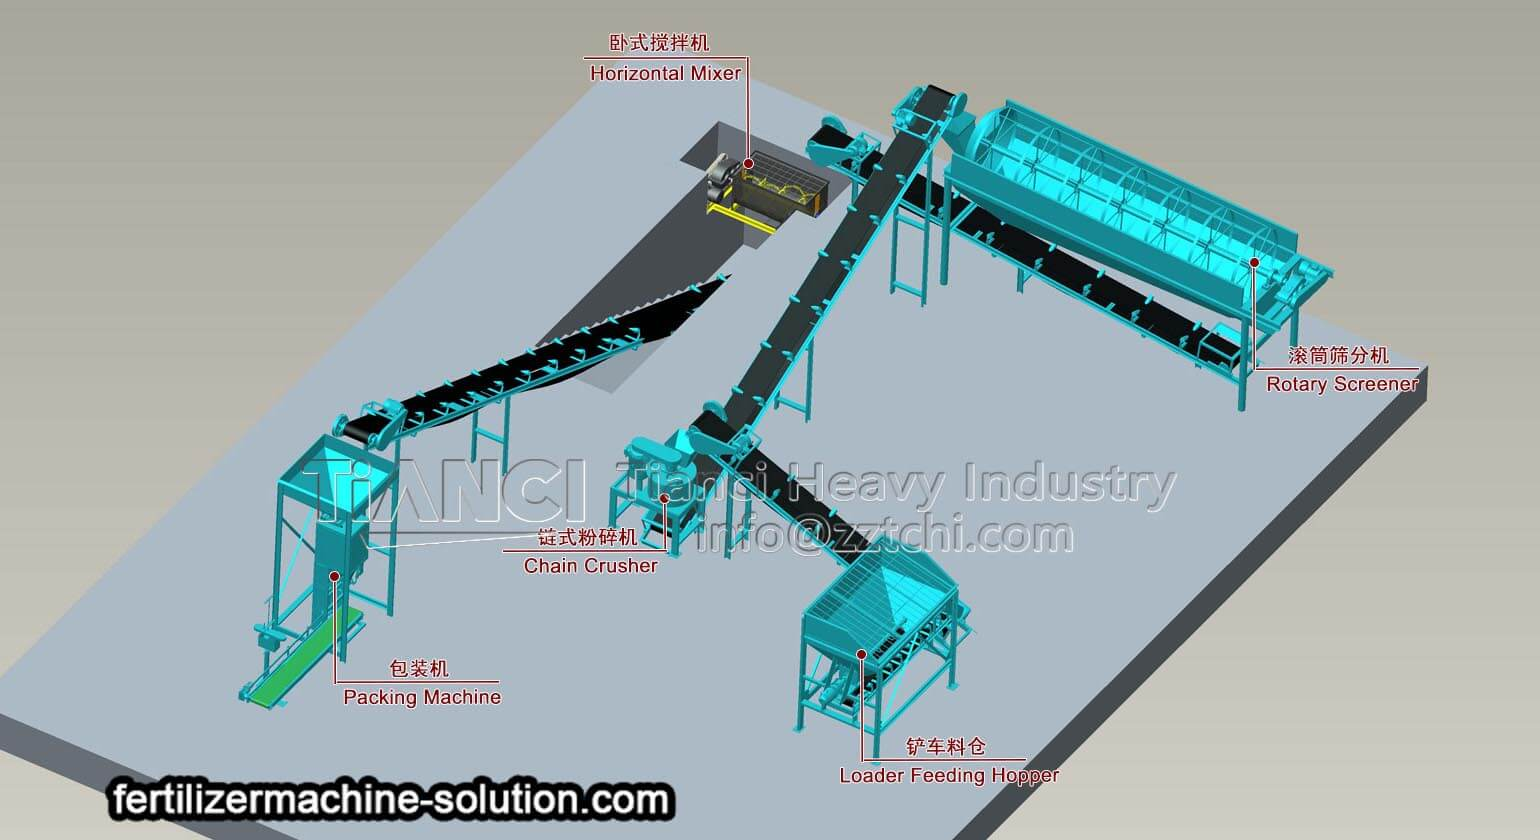 The fertilizer production line can be made into powder and granule